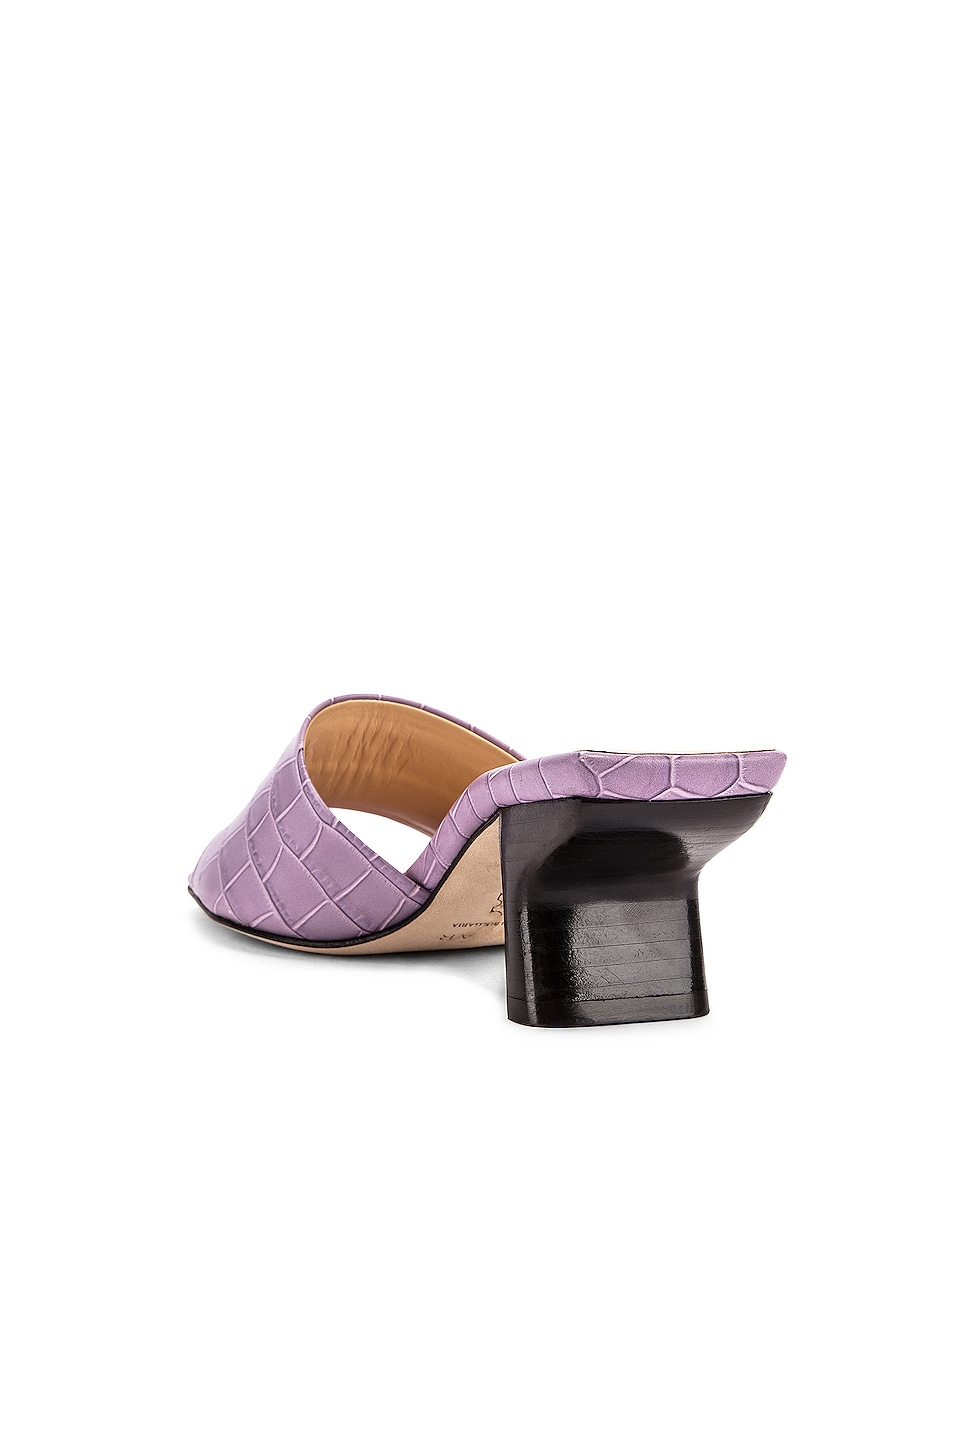 Image 3 of BY FAR Lily Croco Embossed Leather Mule in Lilac